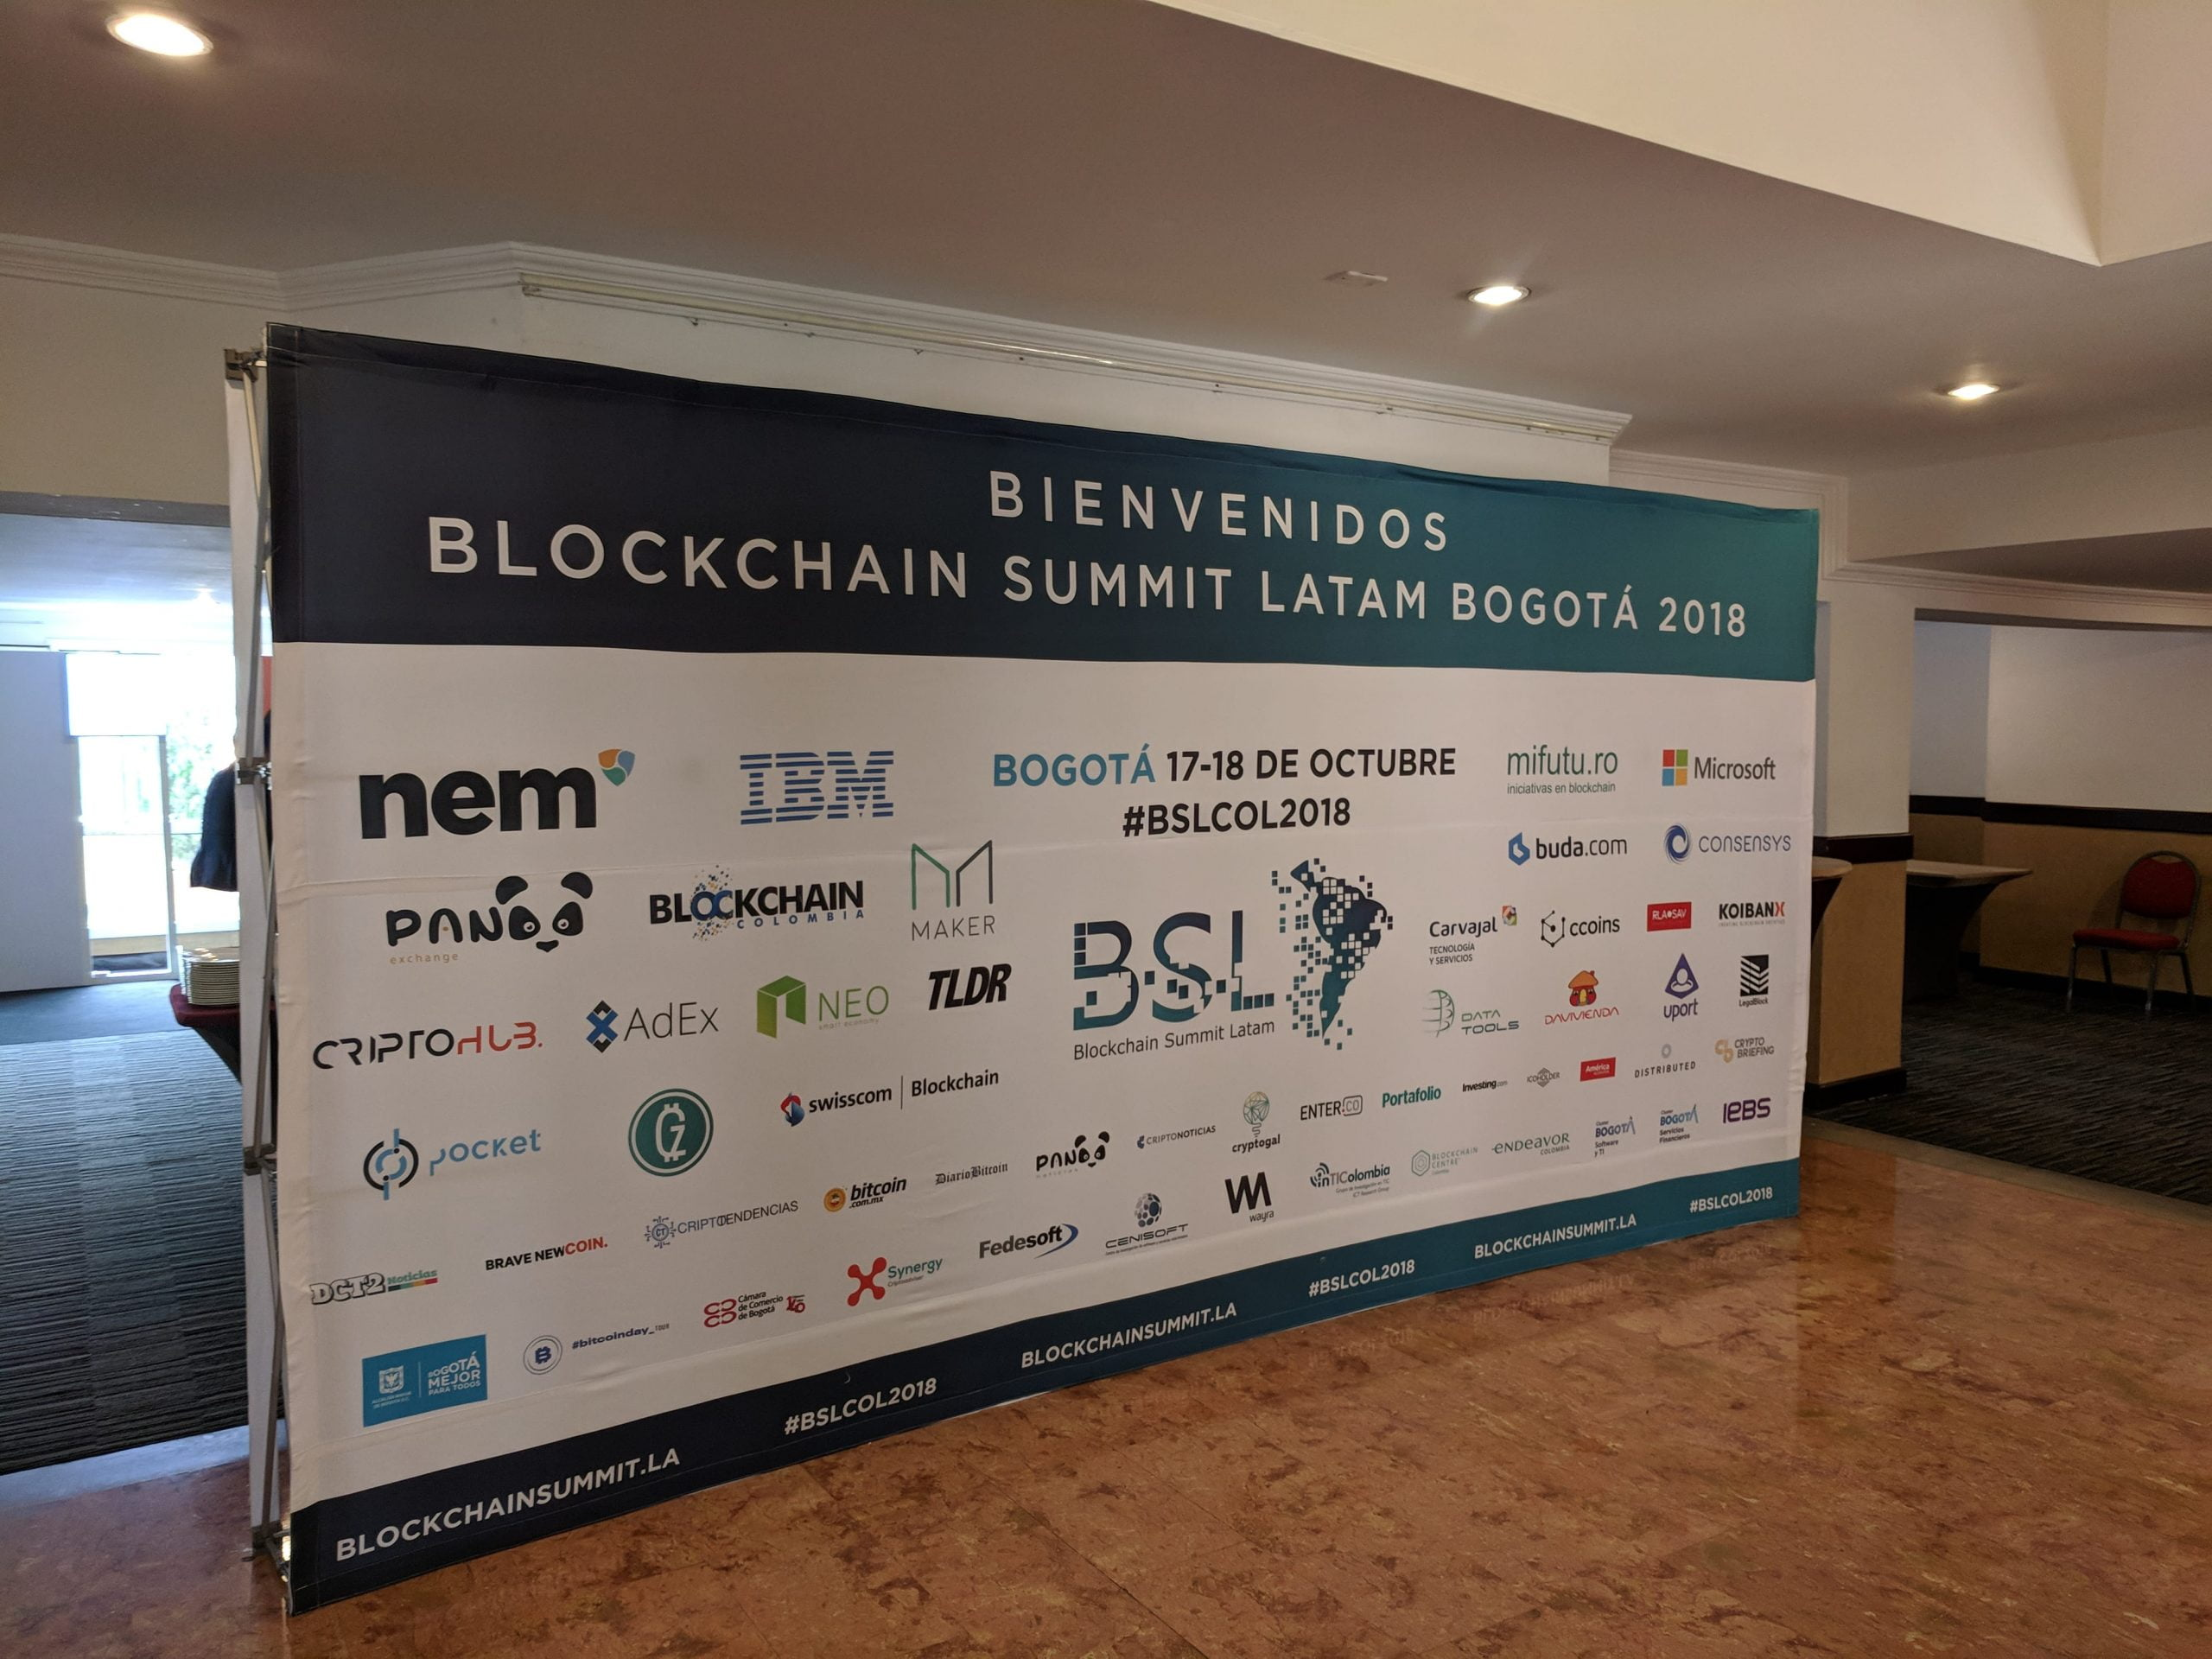 Colombia's ecosystem had its place at the Blockchain Summit Latam 2020